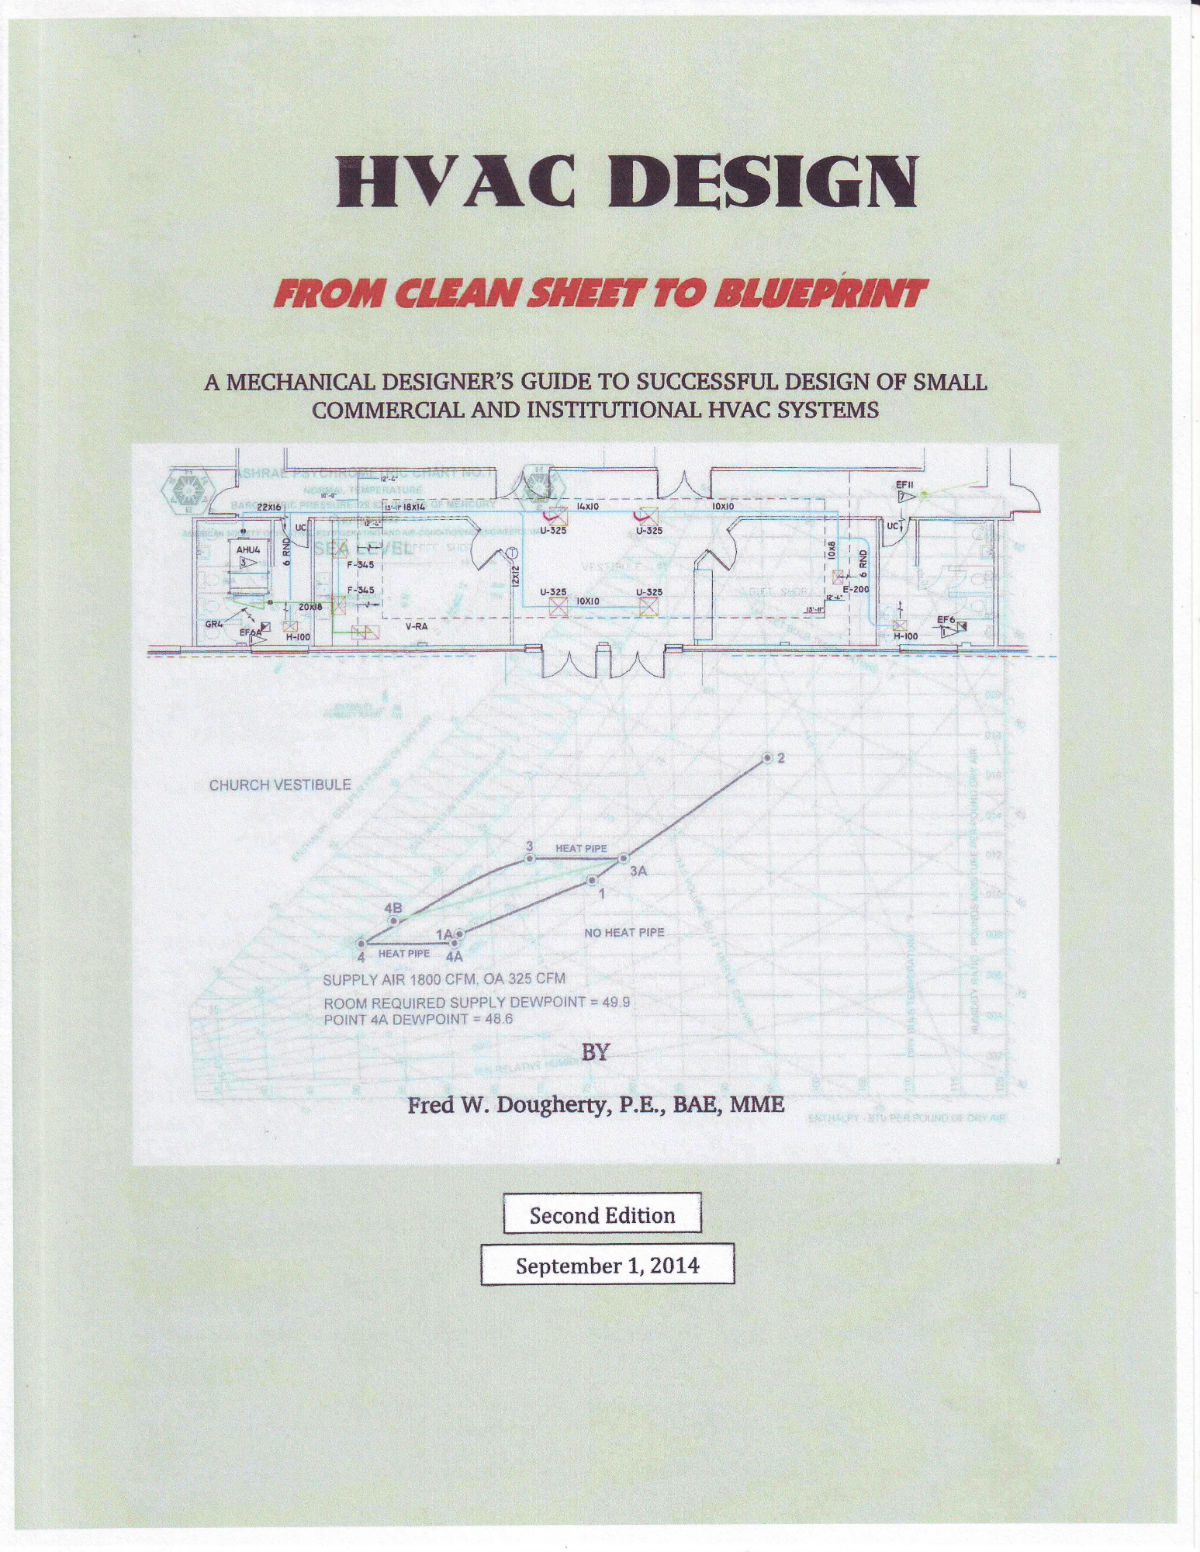 HVAC Design From Clean Sheet to Blueprint #973436